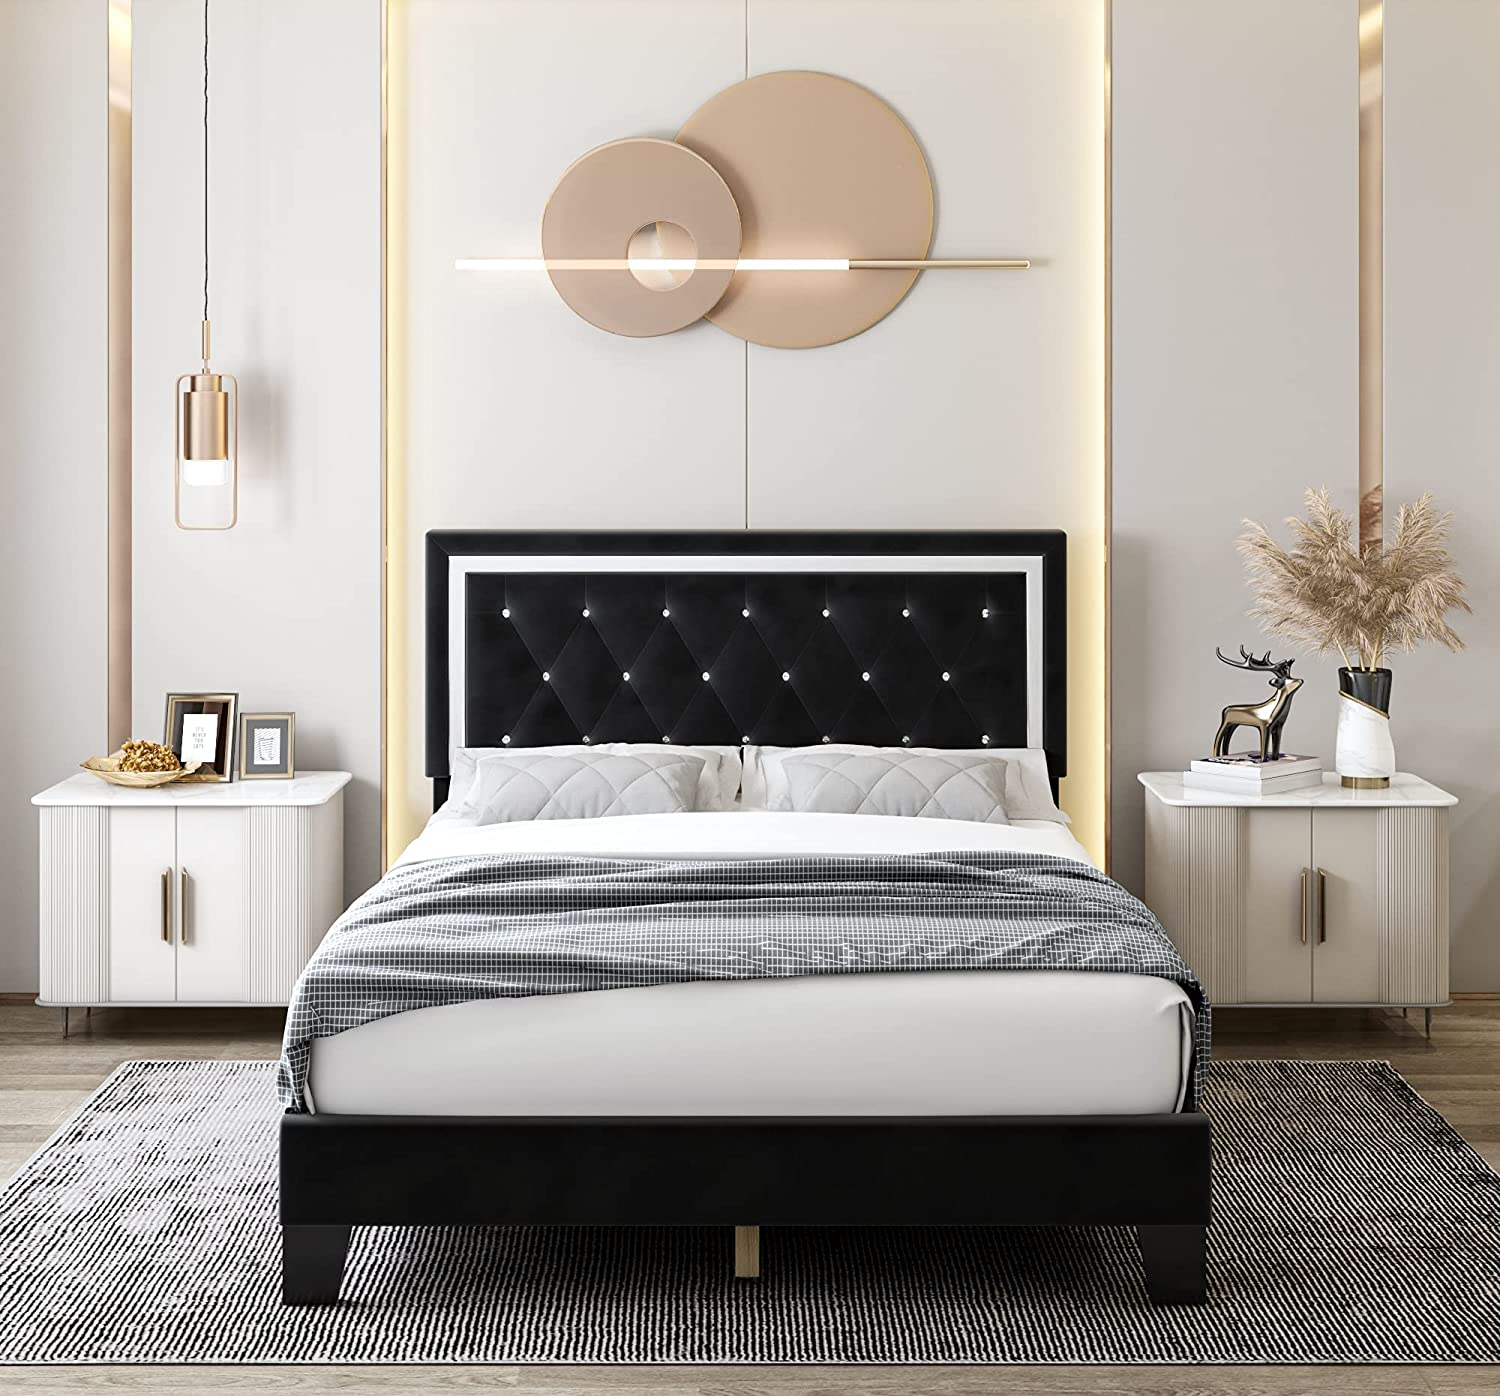 Queen Bed Frame, Diamond Tufted Upholstered Platform Bed Frame with Adjustable Headboard, Mattress Foundation with Wooden Slat Support, No Box Spring Needed, Easy Assembly (Queen, Black)